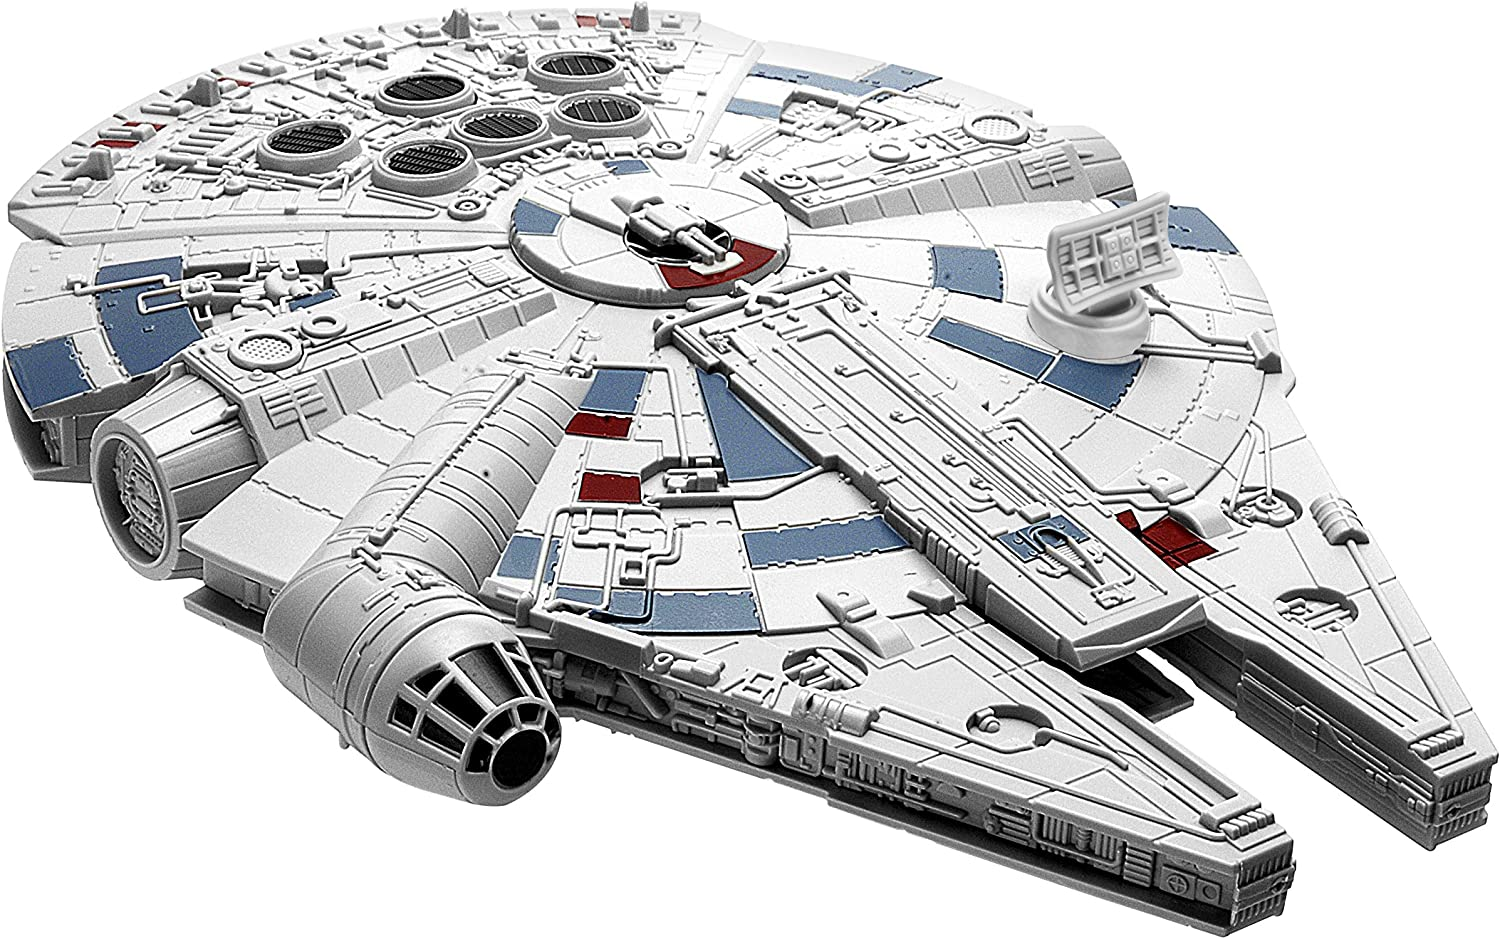 Revell 851668 Snaptite Build and Play Star Wars Millennium Falcon Hobby Model Kit